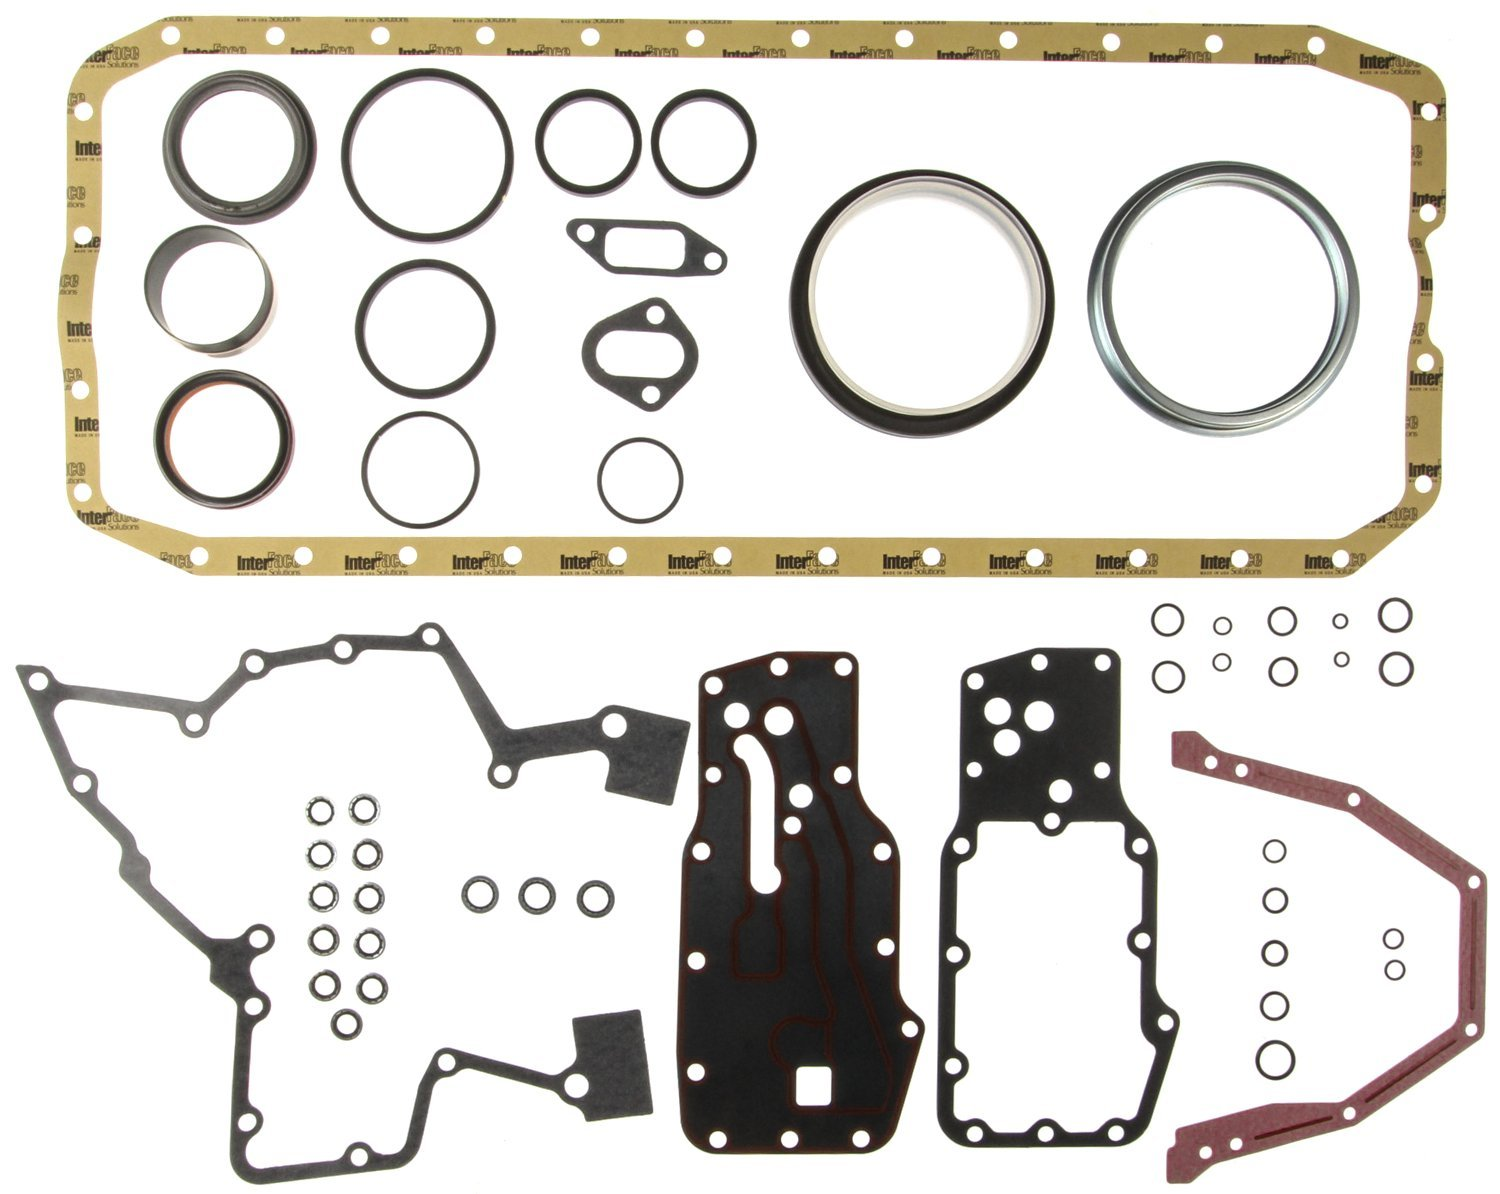 MAHLE Original CS54556 Engine Conversion Gasket Set by MAHLE Original